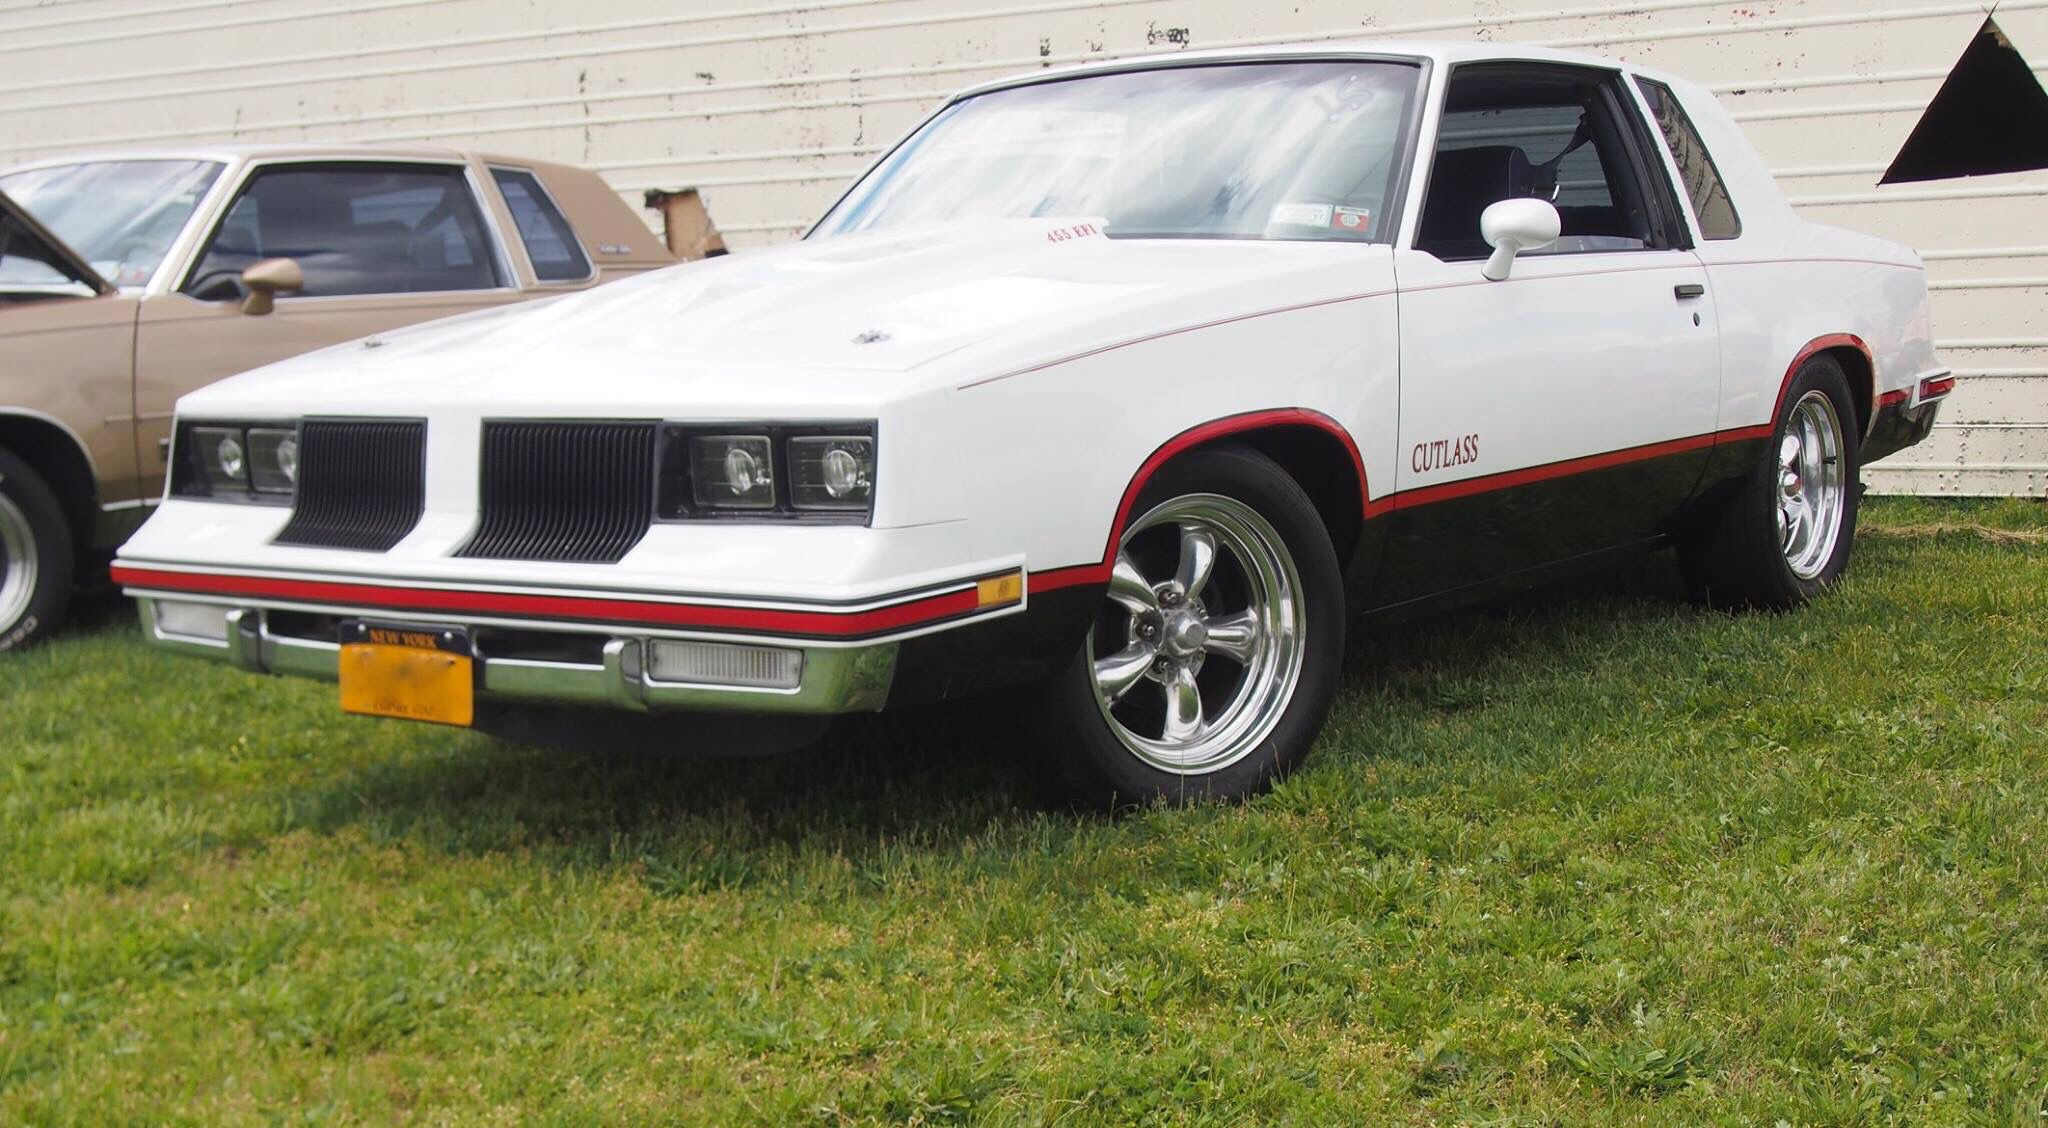 Oldsmobile G Body Cutlass Restomod Oldsmobile Cutlass